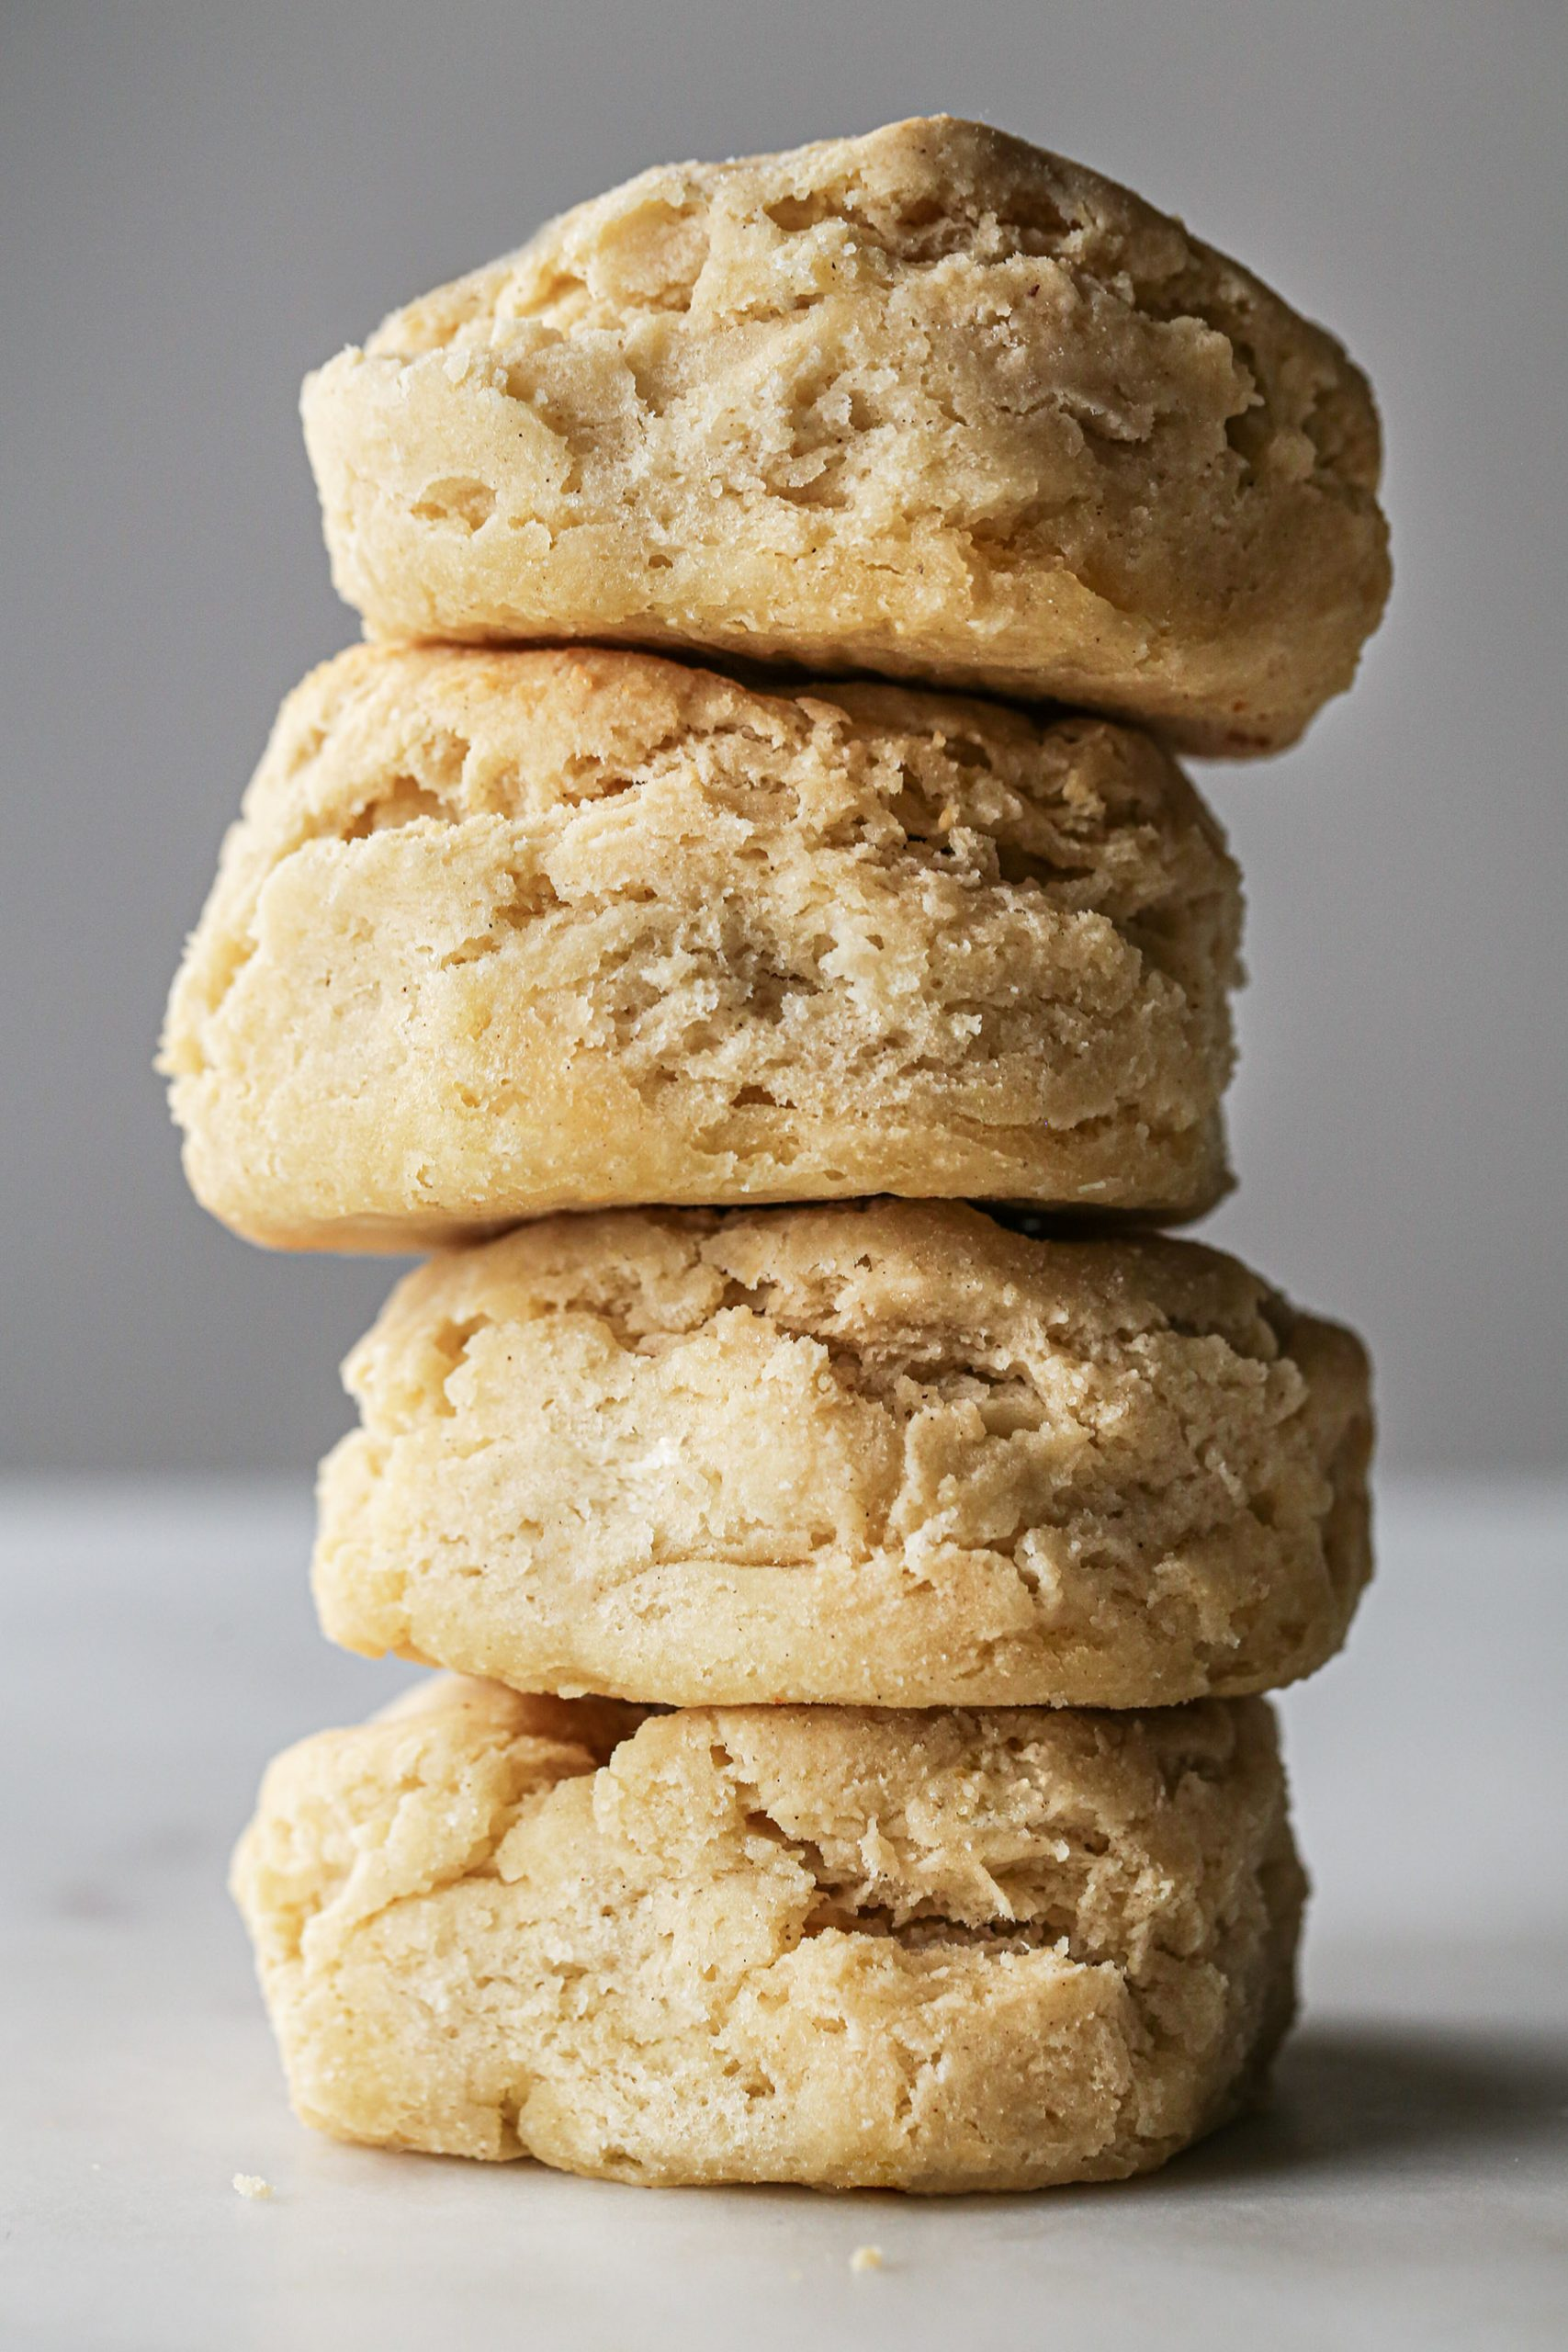 Gluten Free Fluffy Biscuits | Vegan option included